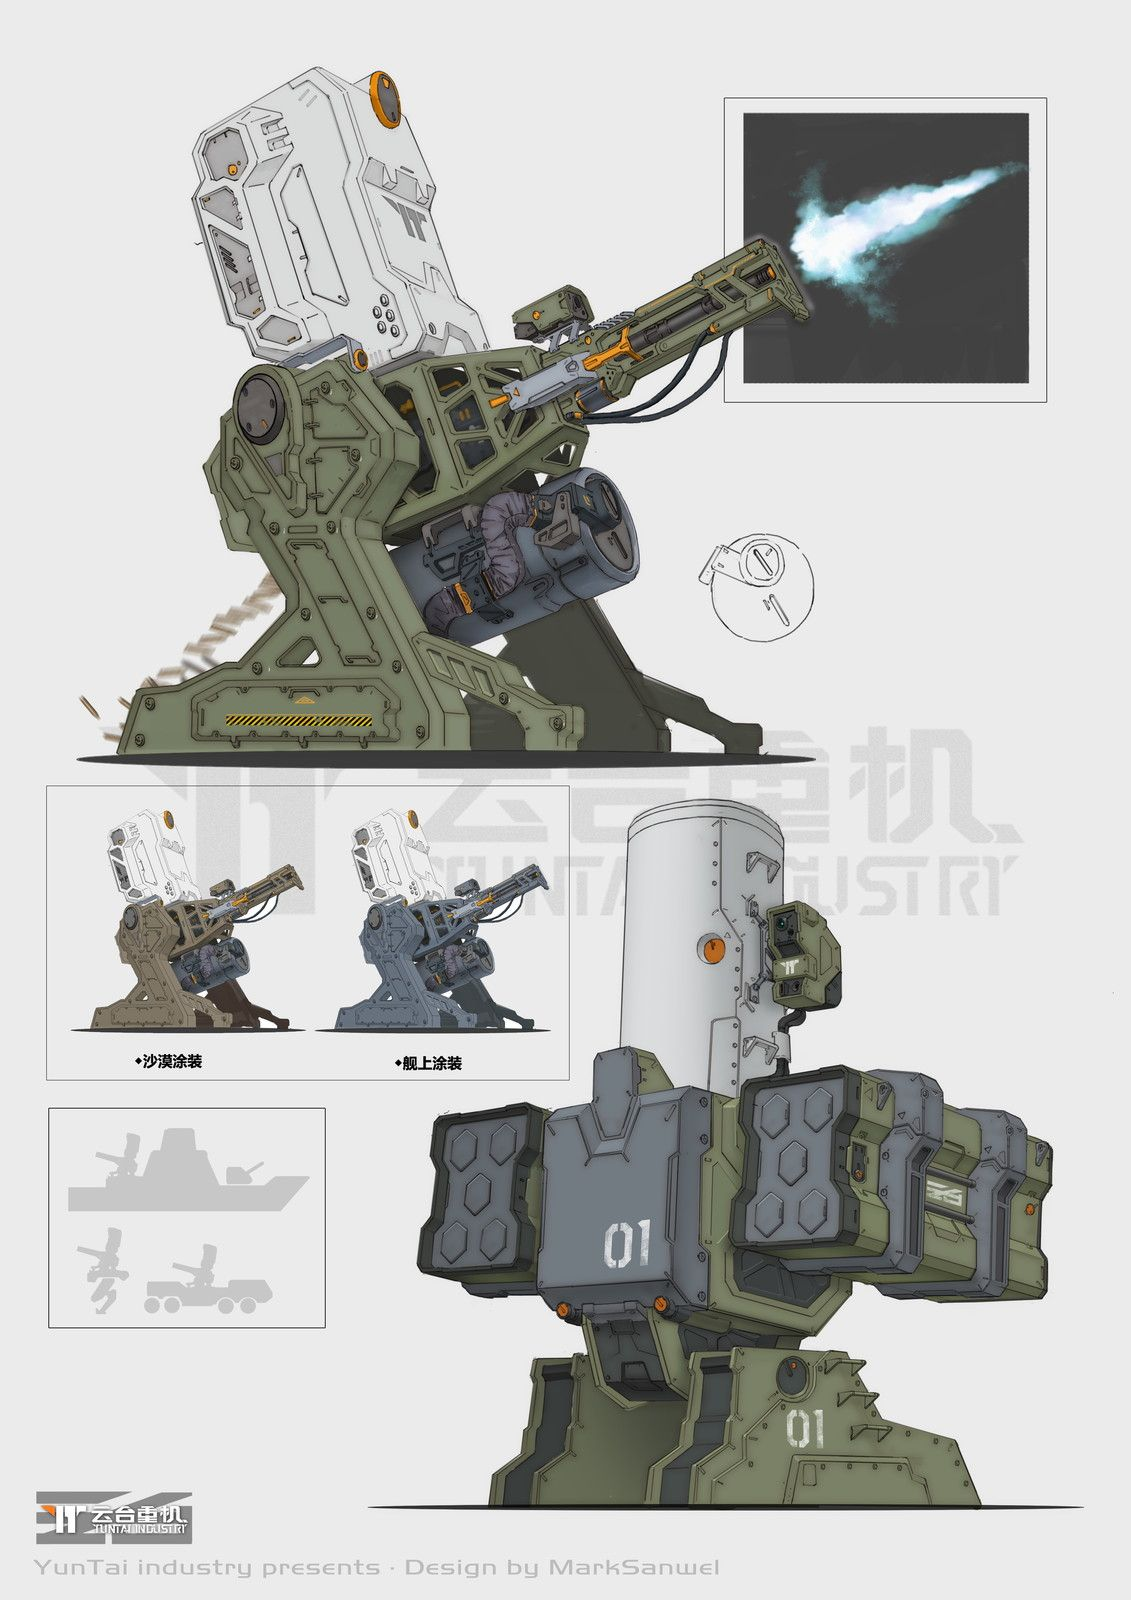 Pin by Angel gonzalez on mechanical | Weapon concept art ...